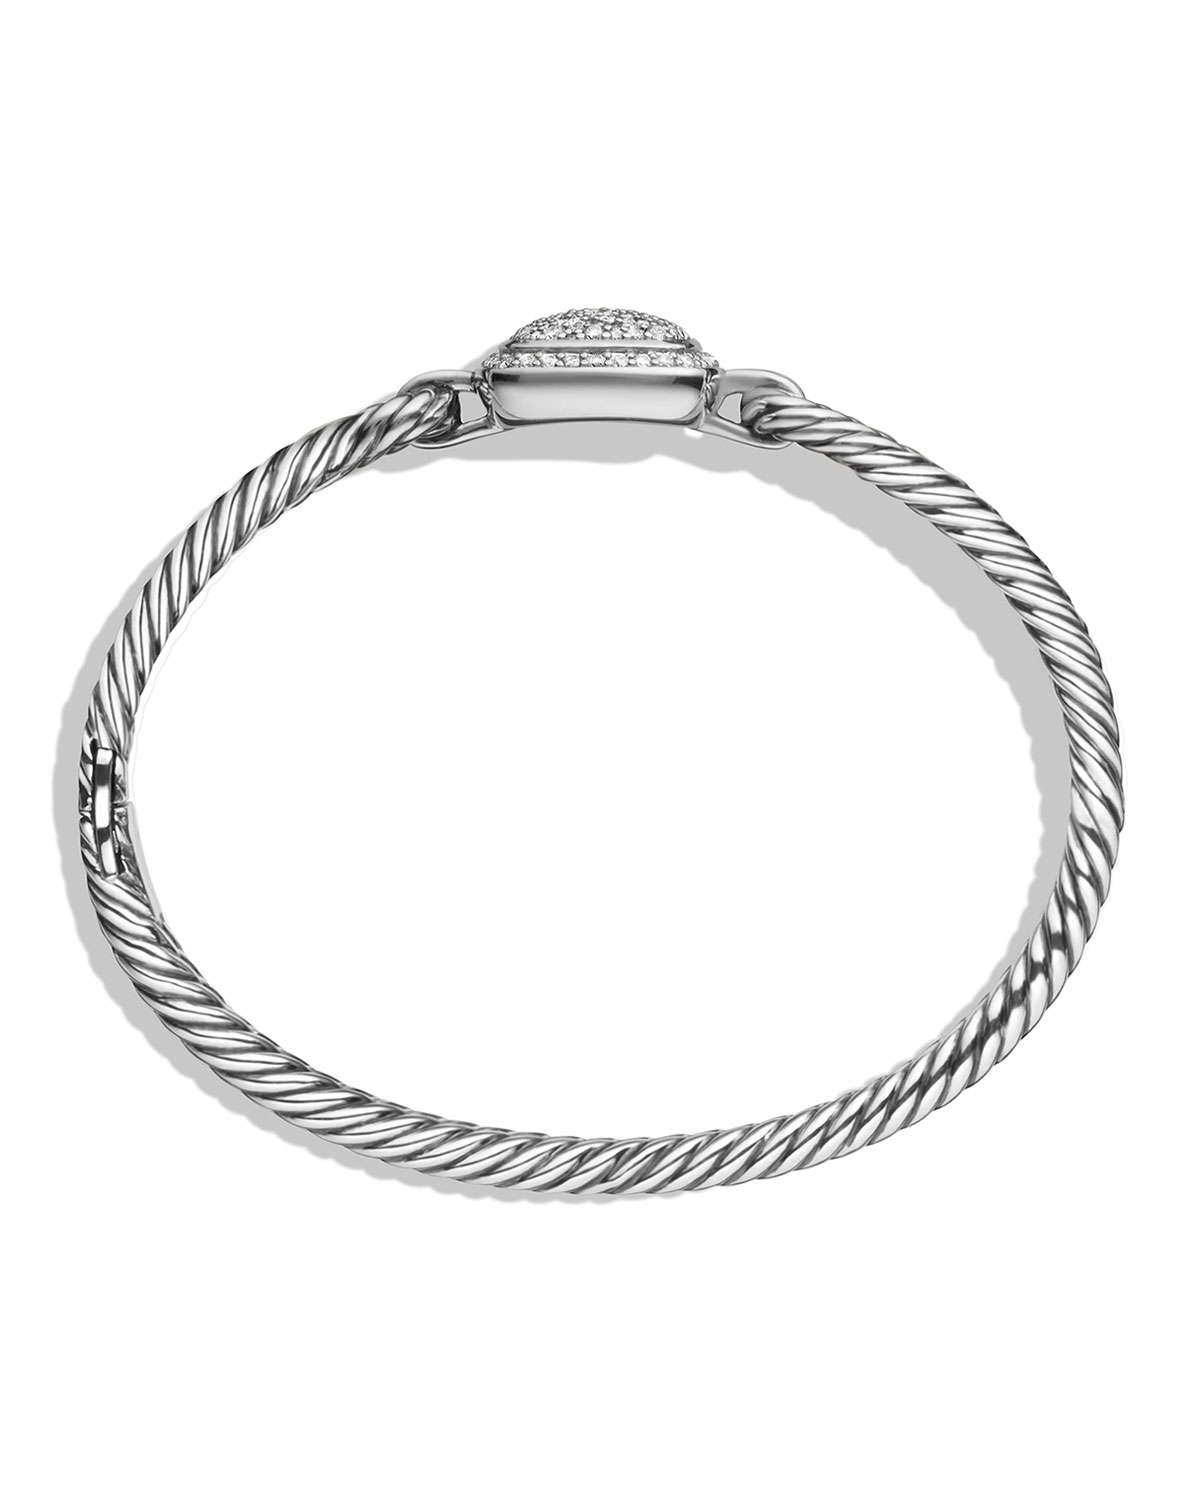 David Yurman Charm Bracelet: David Yurman Albion Bracelet With Diamonds In Metallic